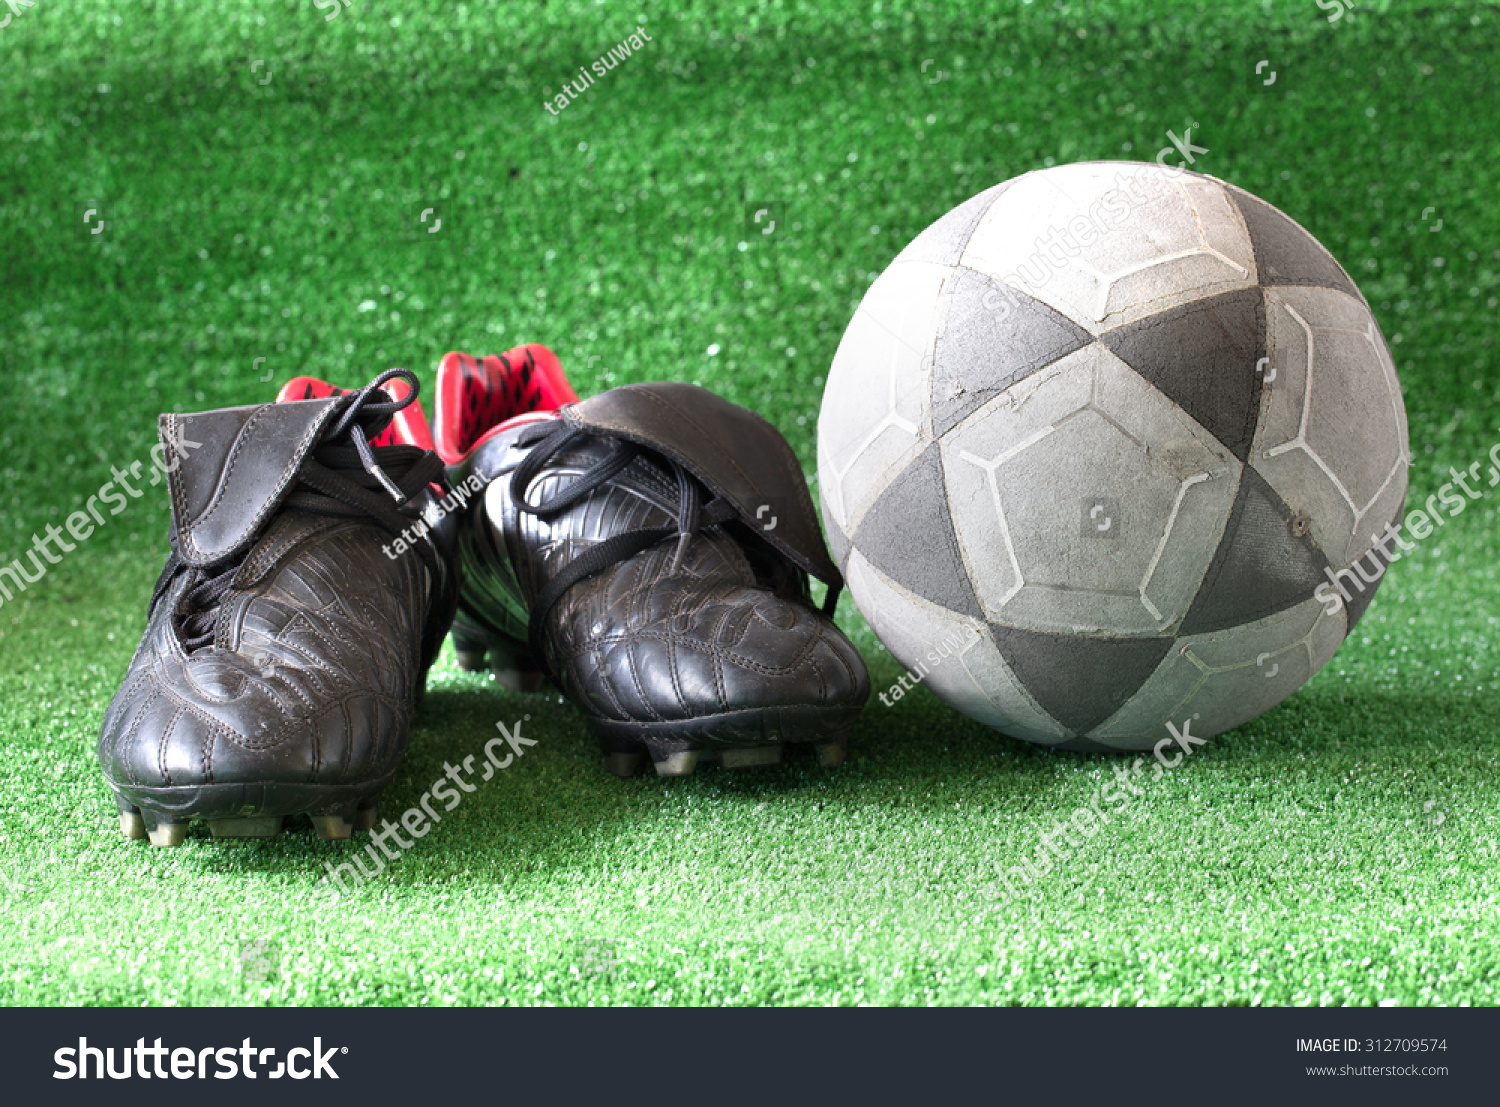 eab47f7d9 Football Soccer Shoes On Green Grass Stock Photo (Edit Now ...